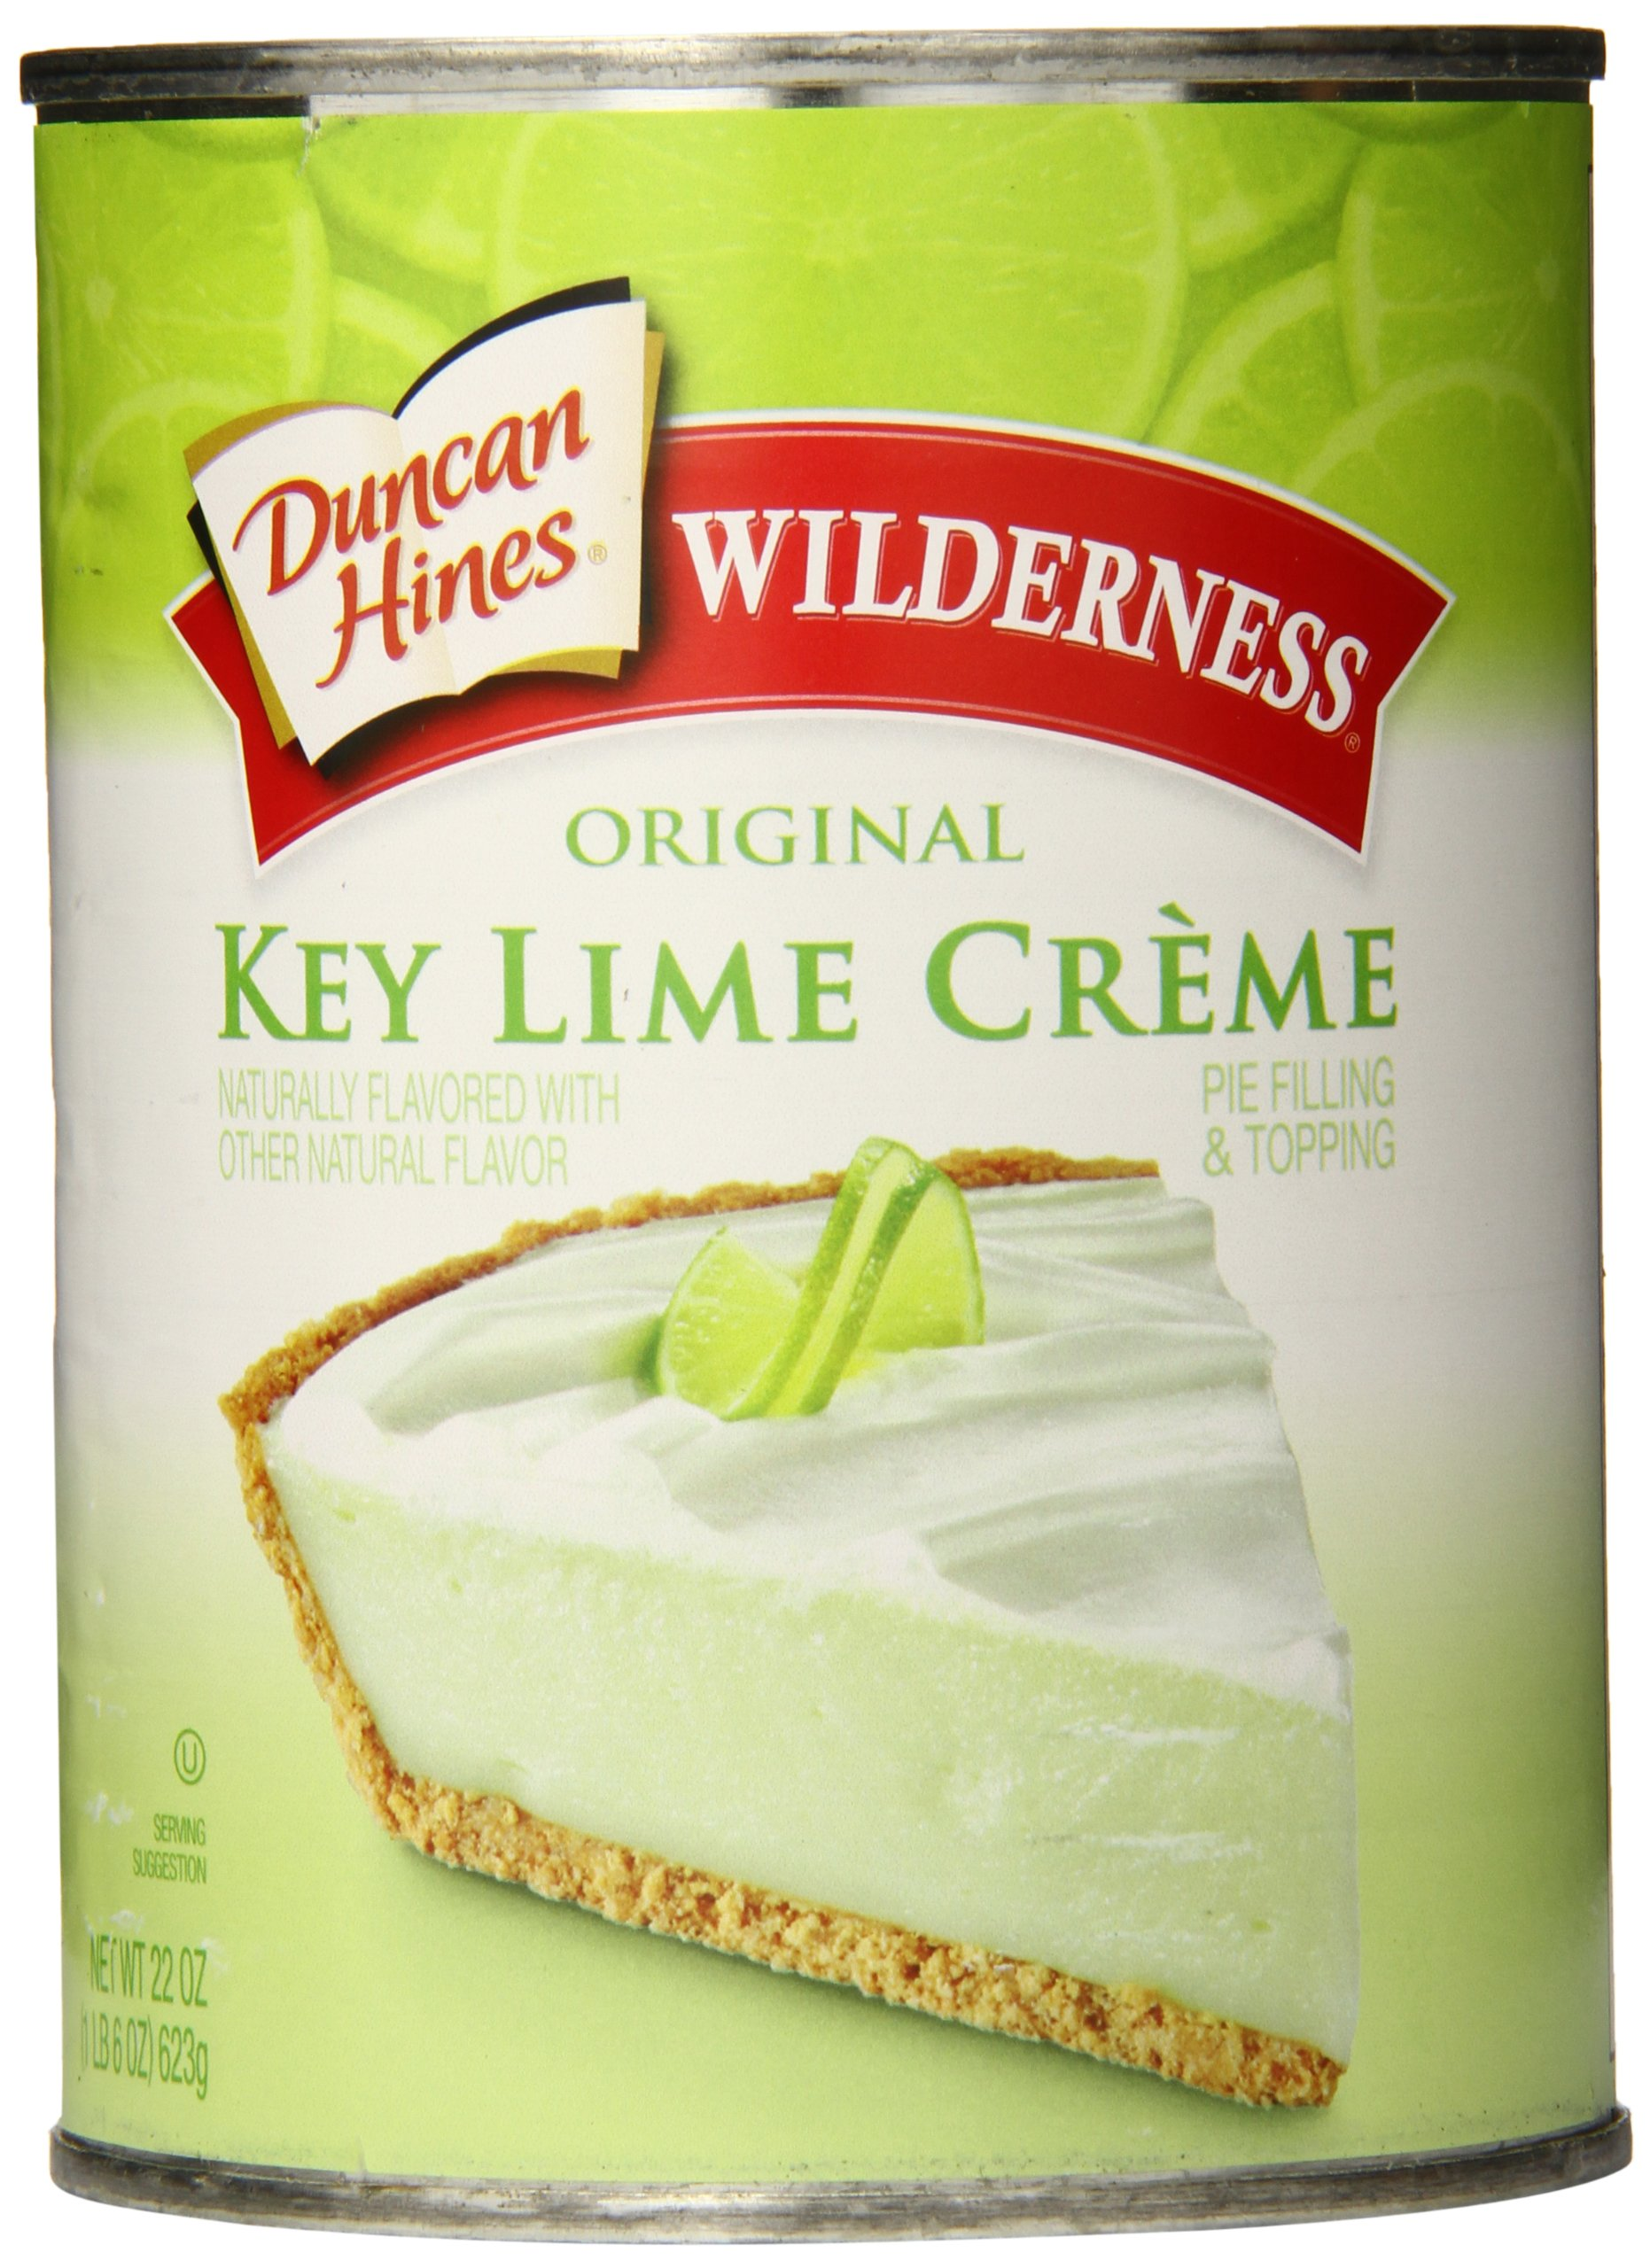 Wilderness Original Pie Filling & Topping, Key Lime Creme, 22 Ounce (Pack of 8)